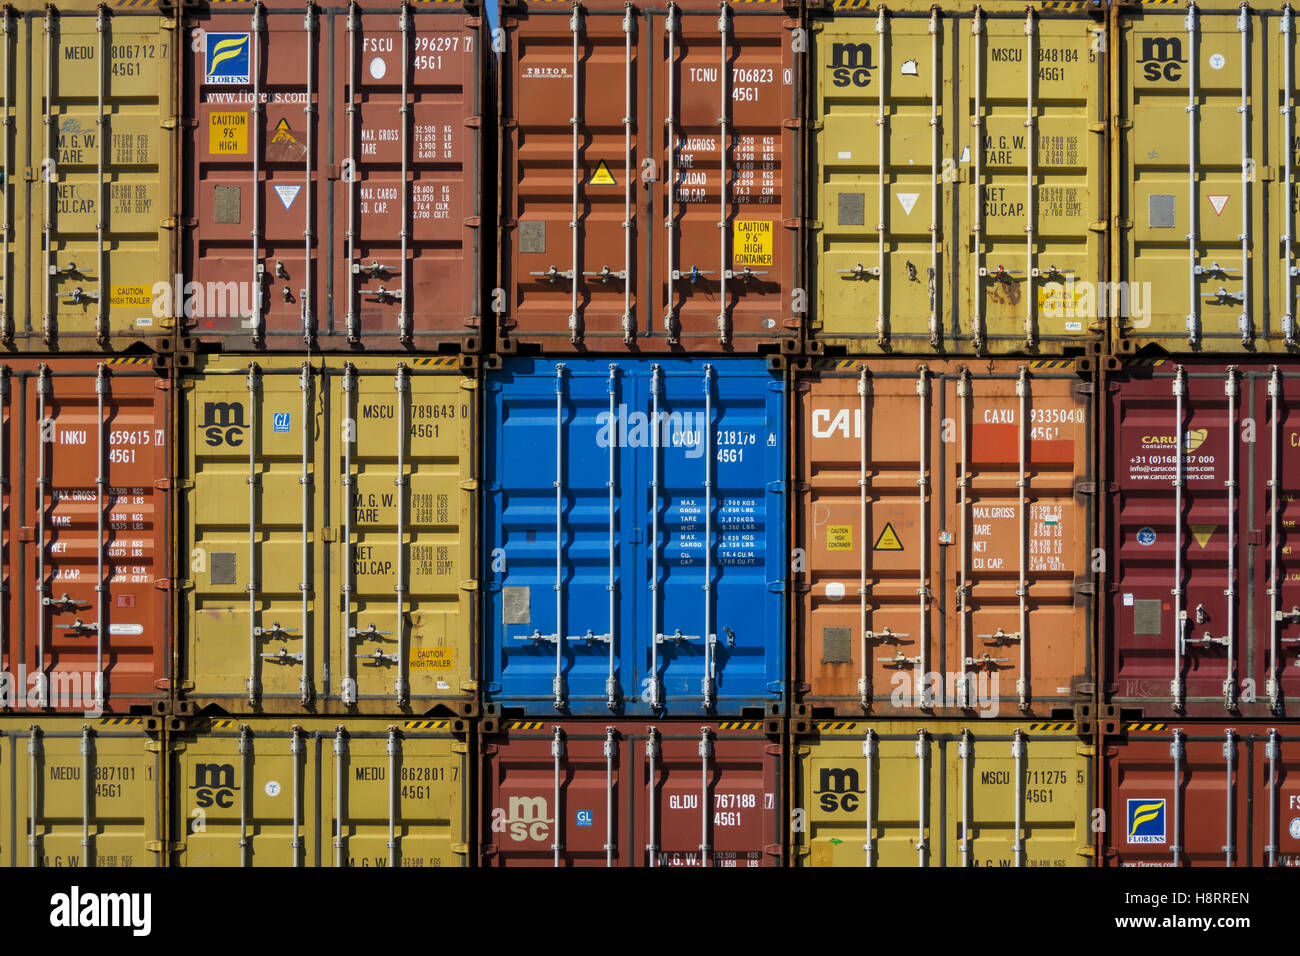 Stacks of shipping containers in Leixões port, Matosinhos, Portugal, Europe Stock Photo